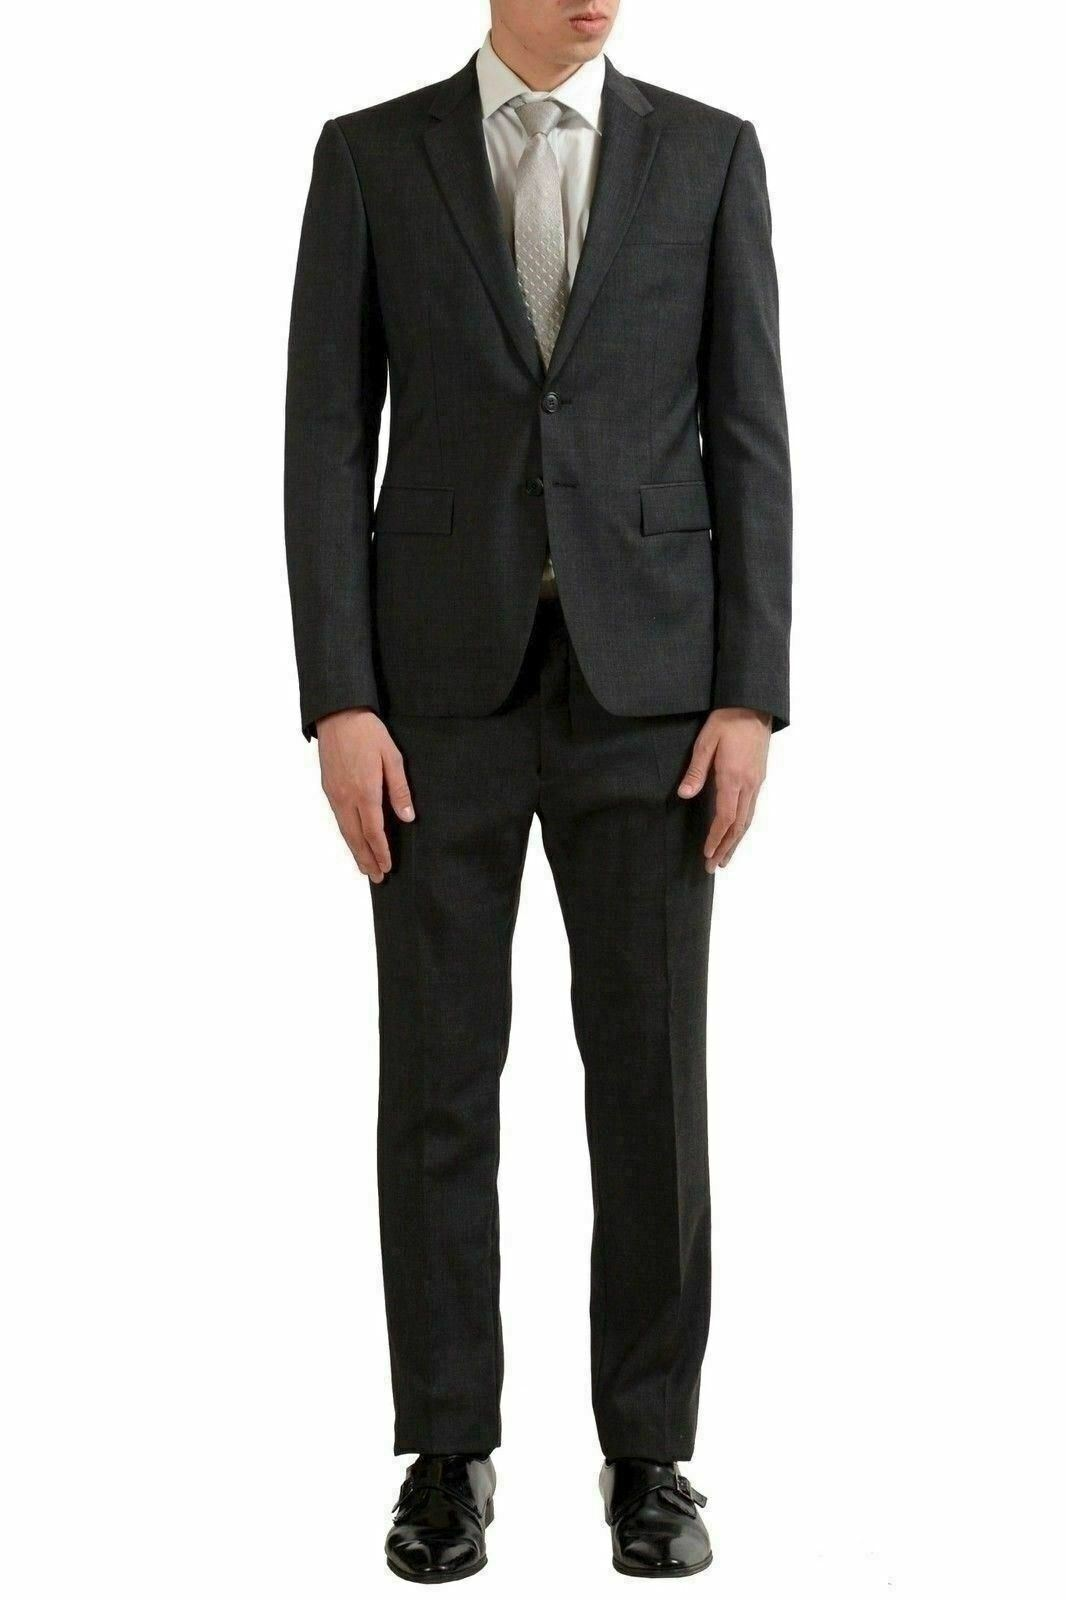 Just Cavalli Men's Charcoal 100% Wool Plaid Two Button Suit US 38 IT 48